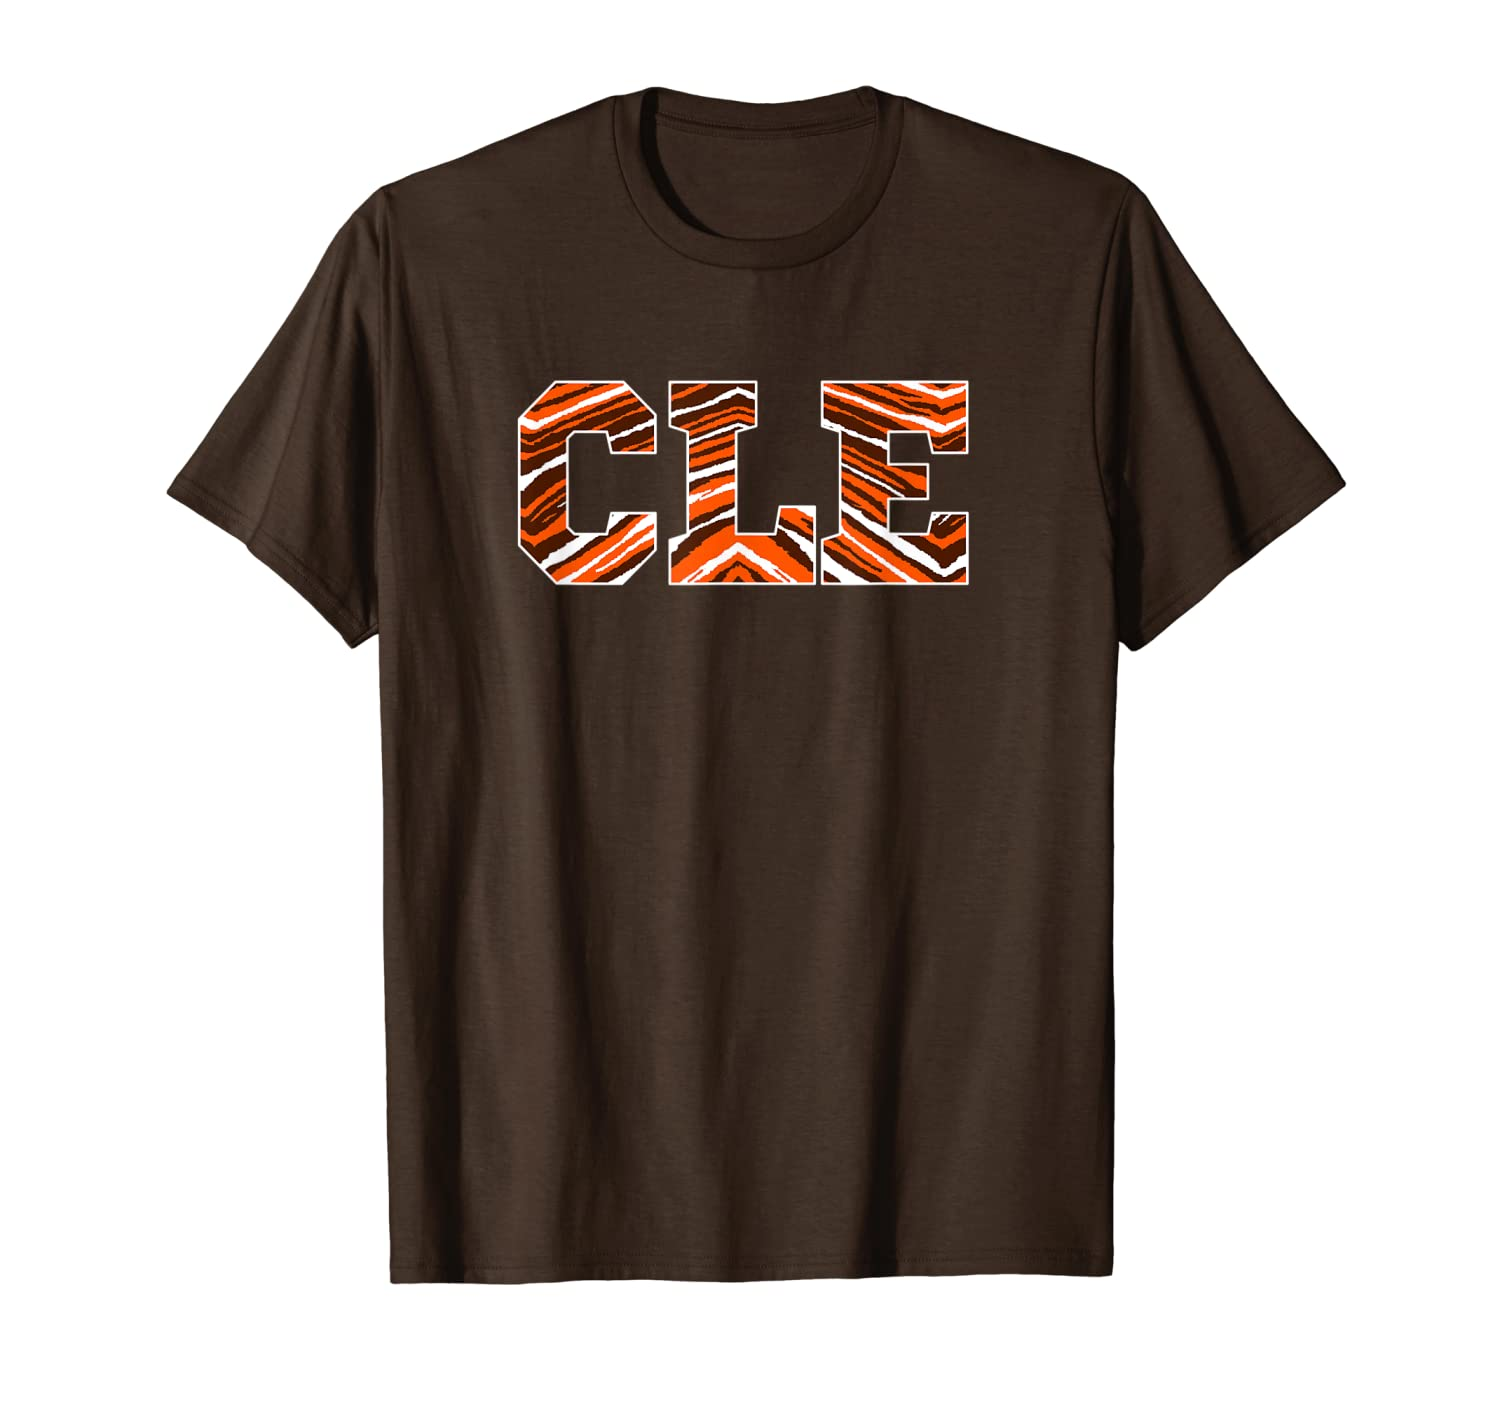 Cleveland Game Day CLE Zebra Pattern Sunday Funday Football T-Shirt-TH